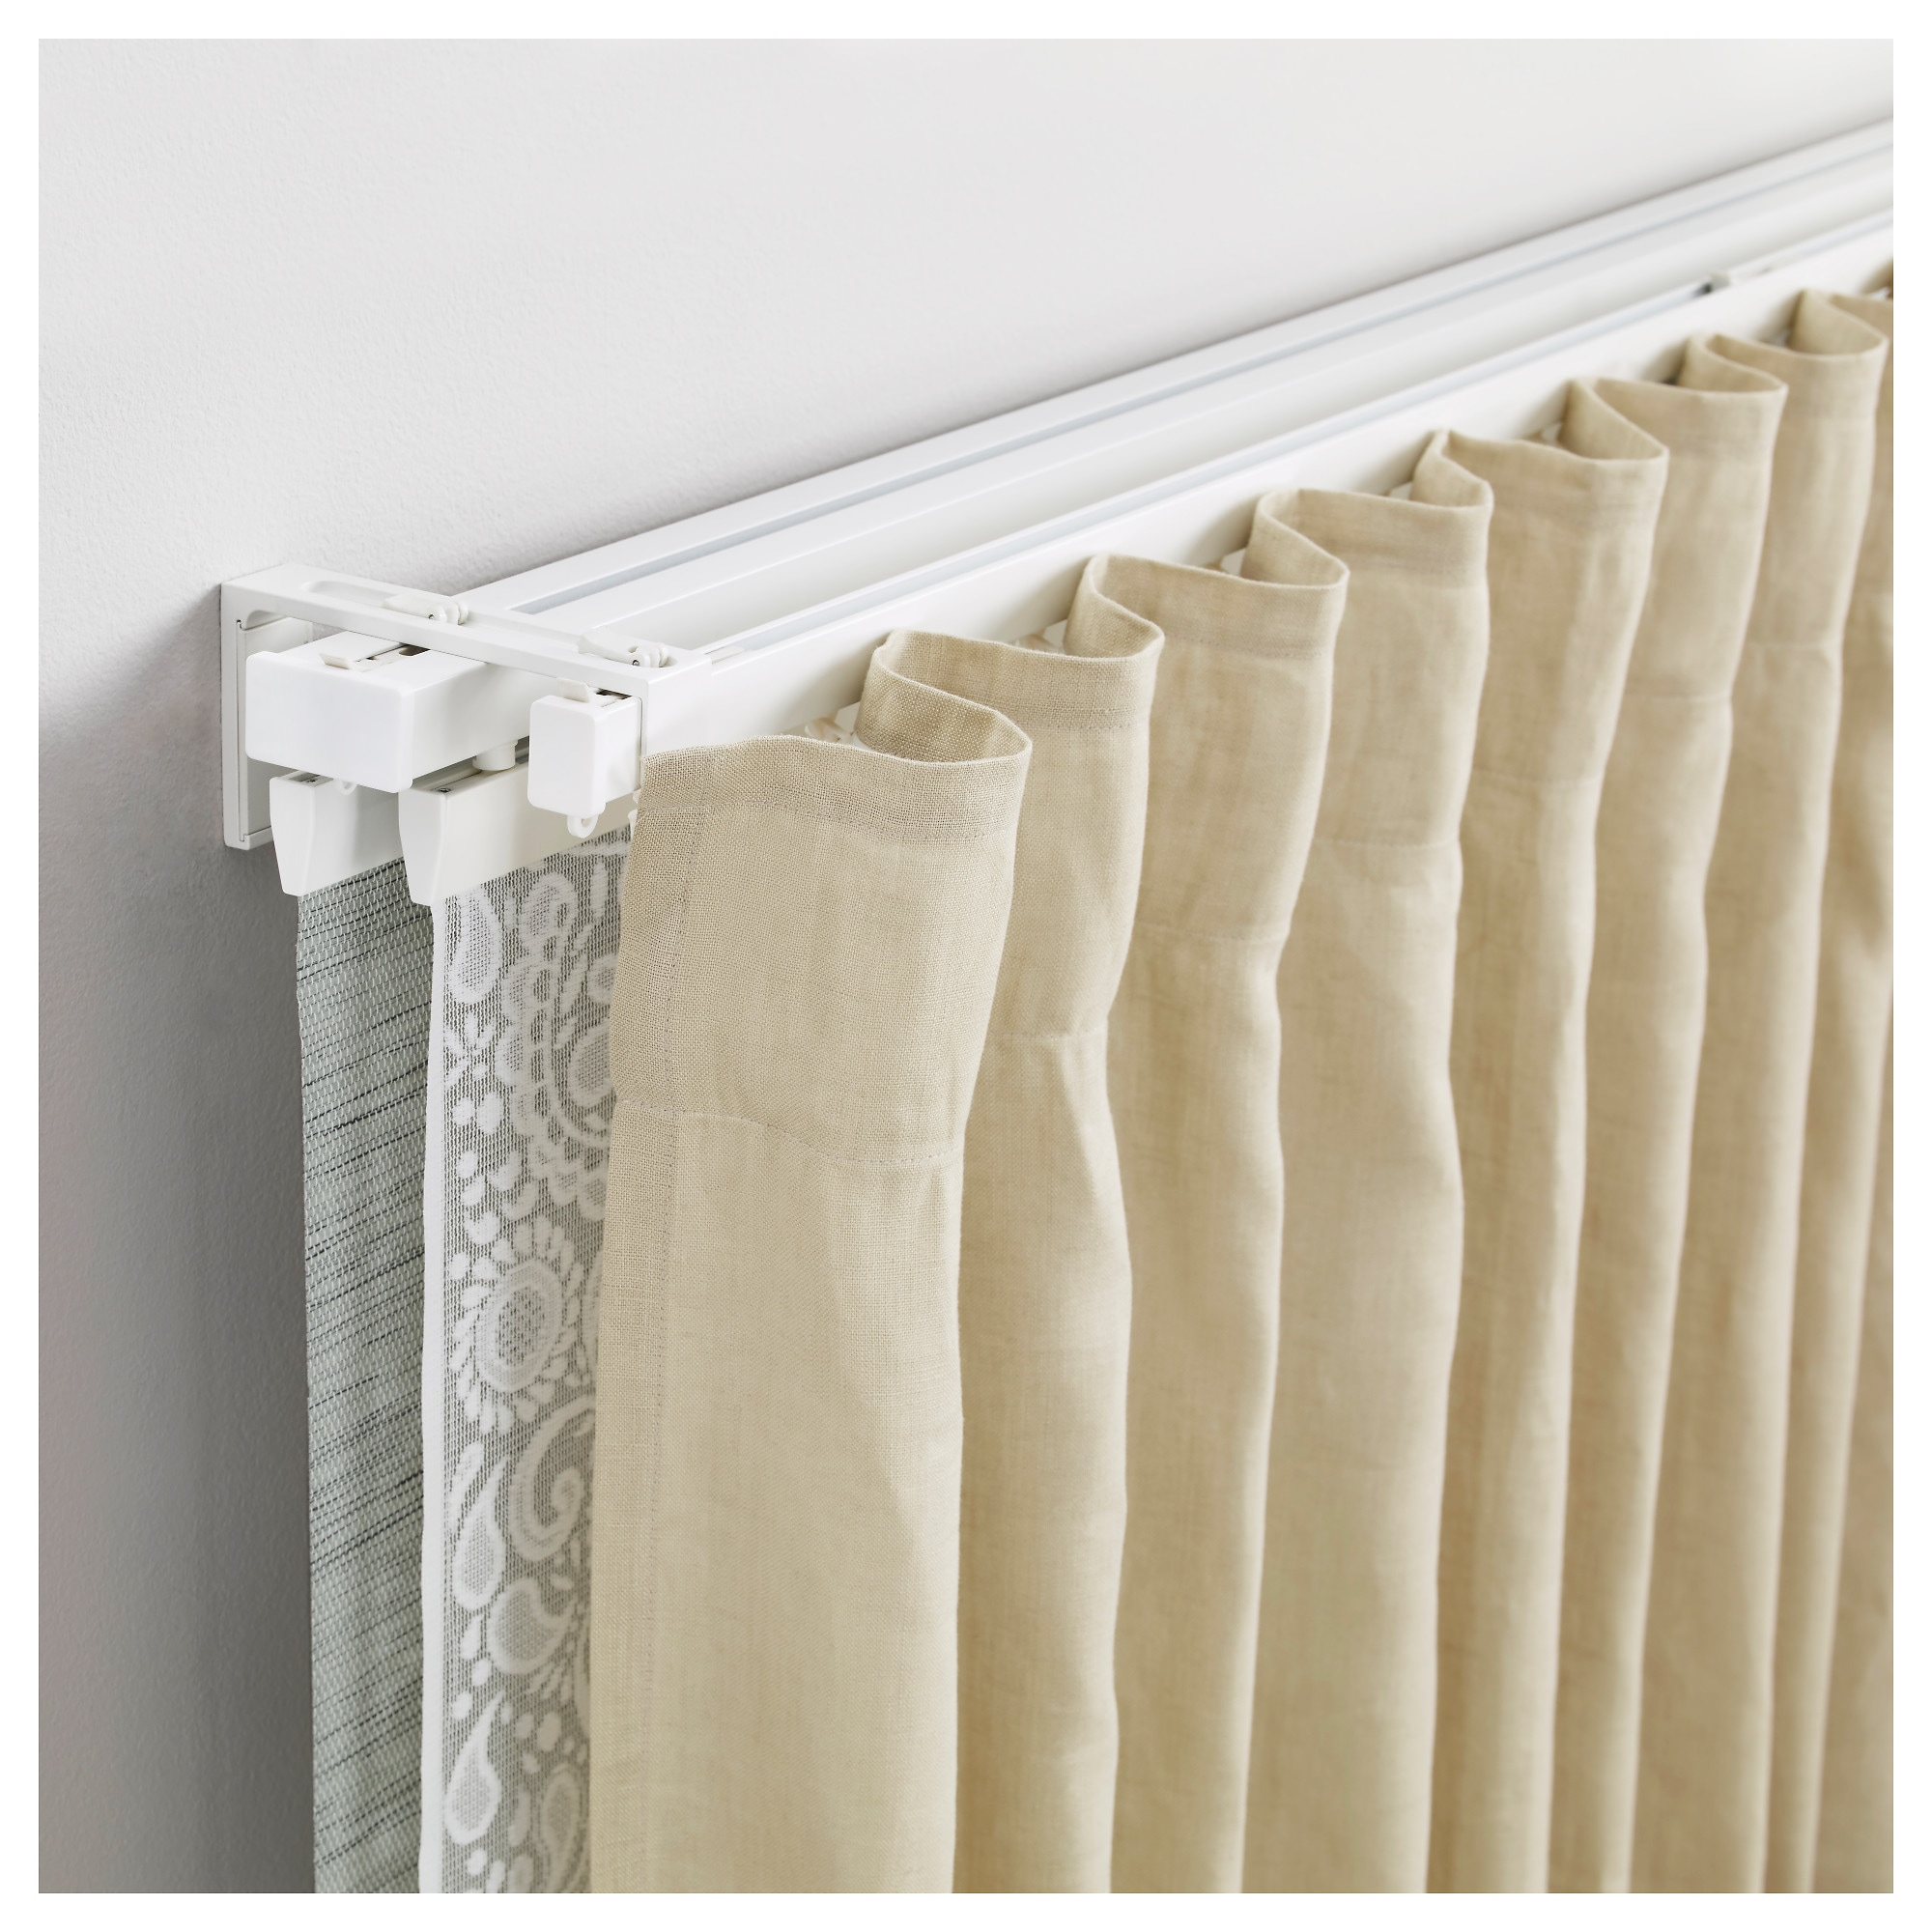 curtain rails rods curtain tracks rods more ikea vidga single and triple track set white